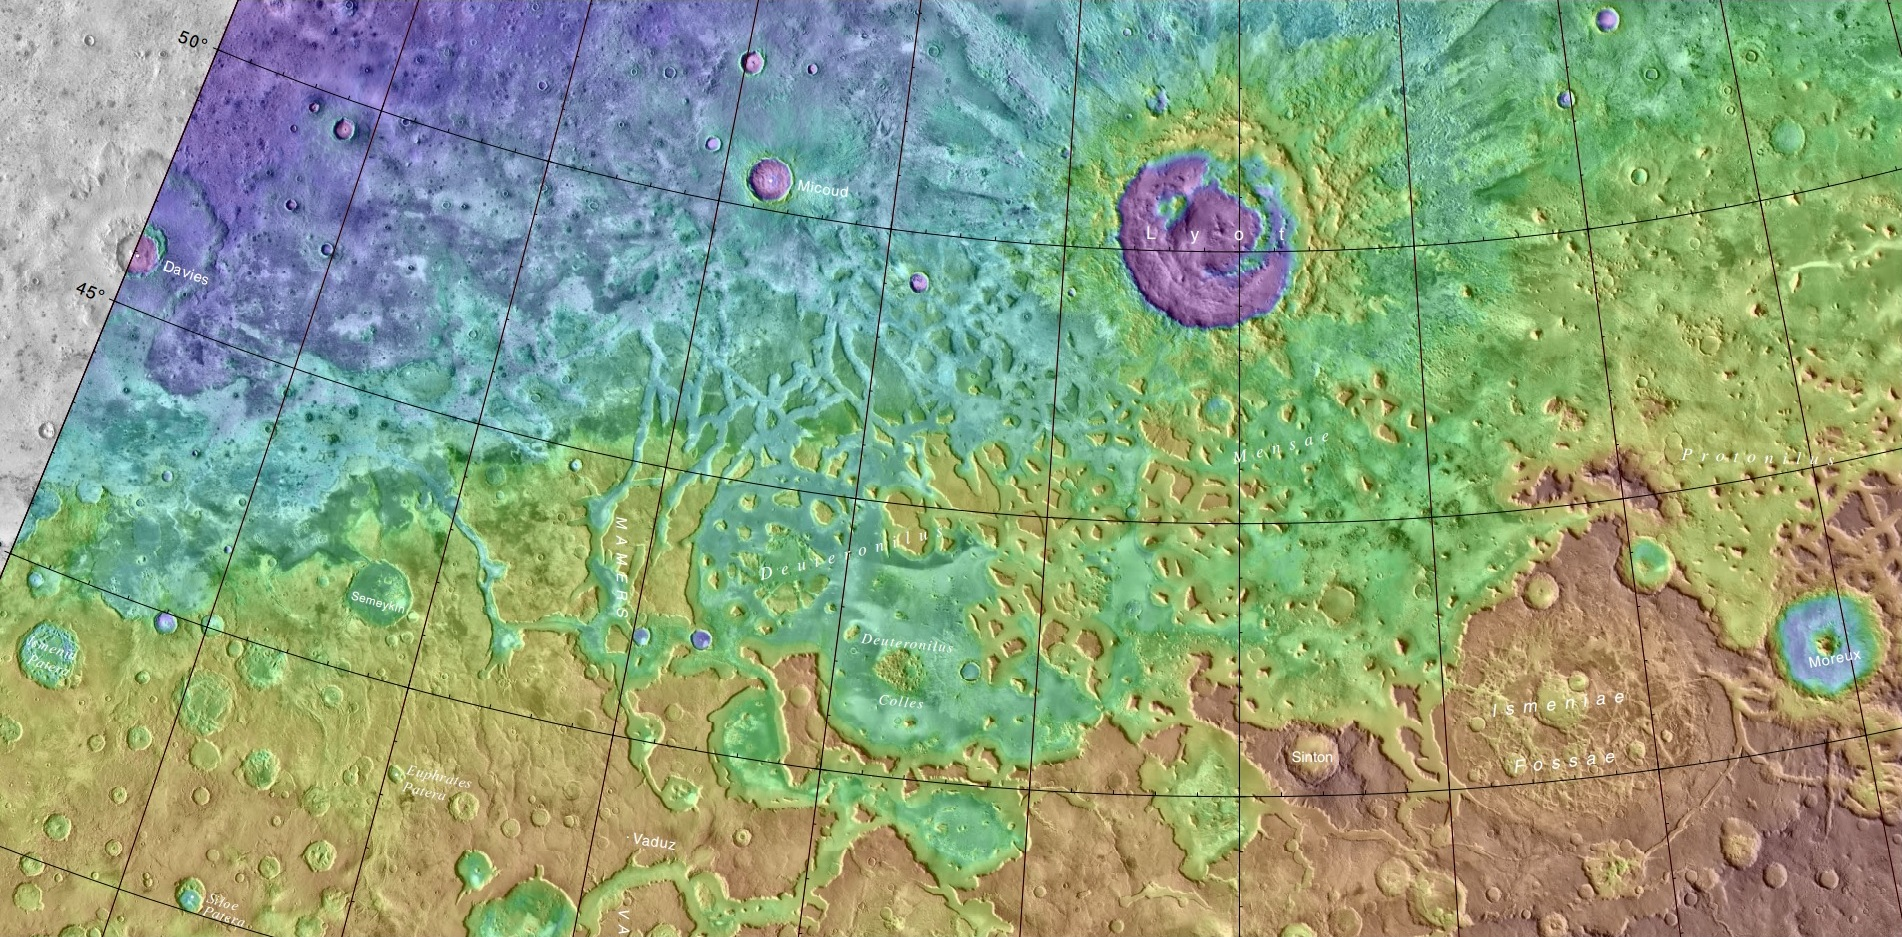 MOLA map of Lyot and other nearby craters. Colors indicate elevations.